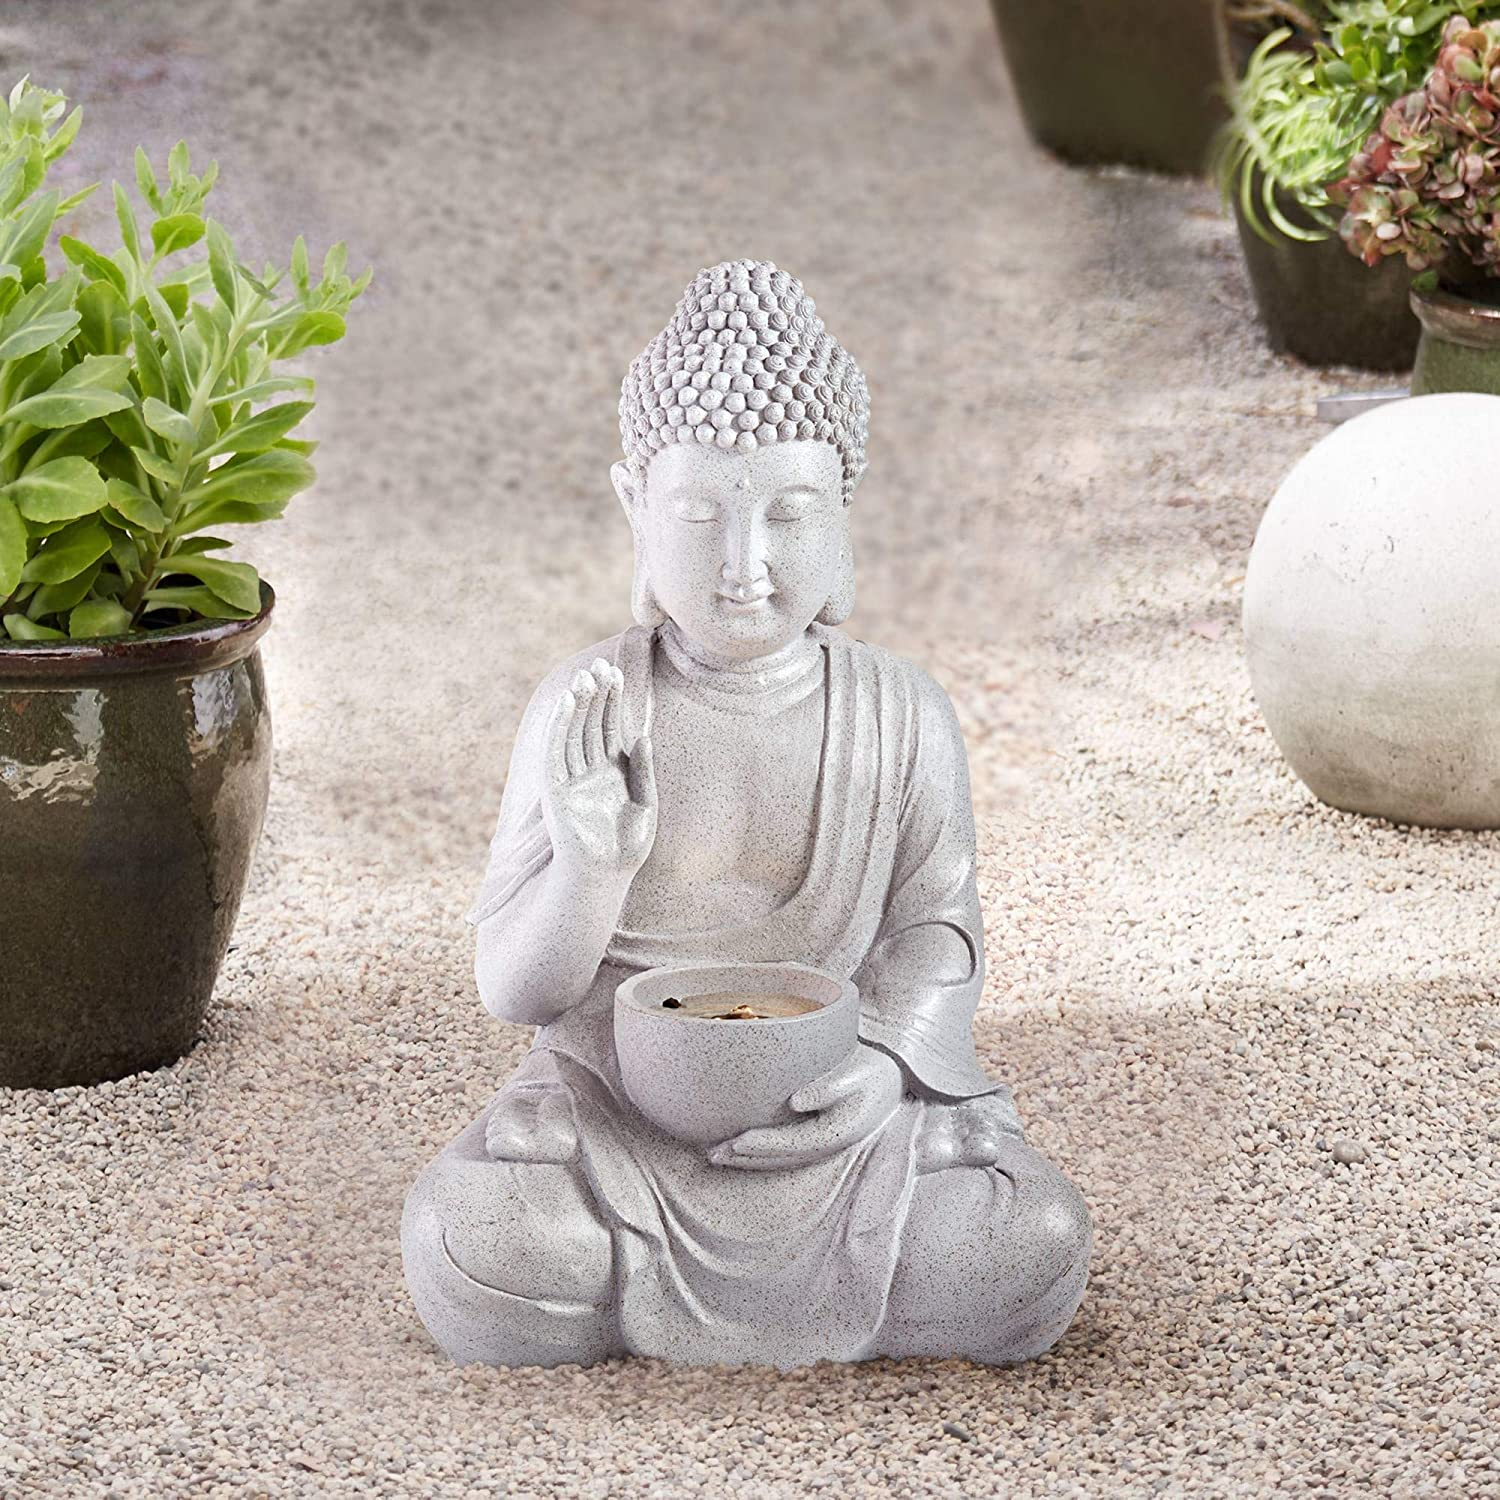 John Timberland Buddha Asian Zen Outdoor Water Fountain with Light LED 19